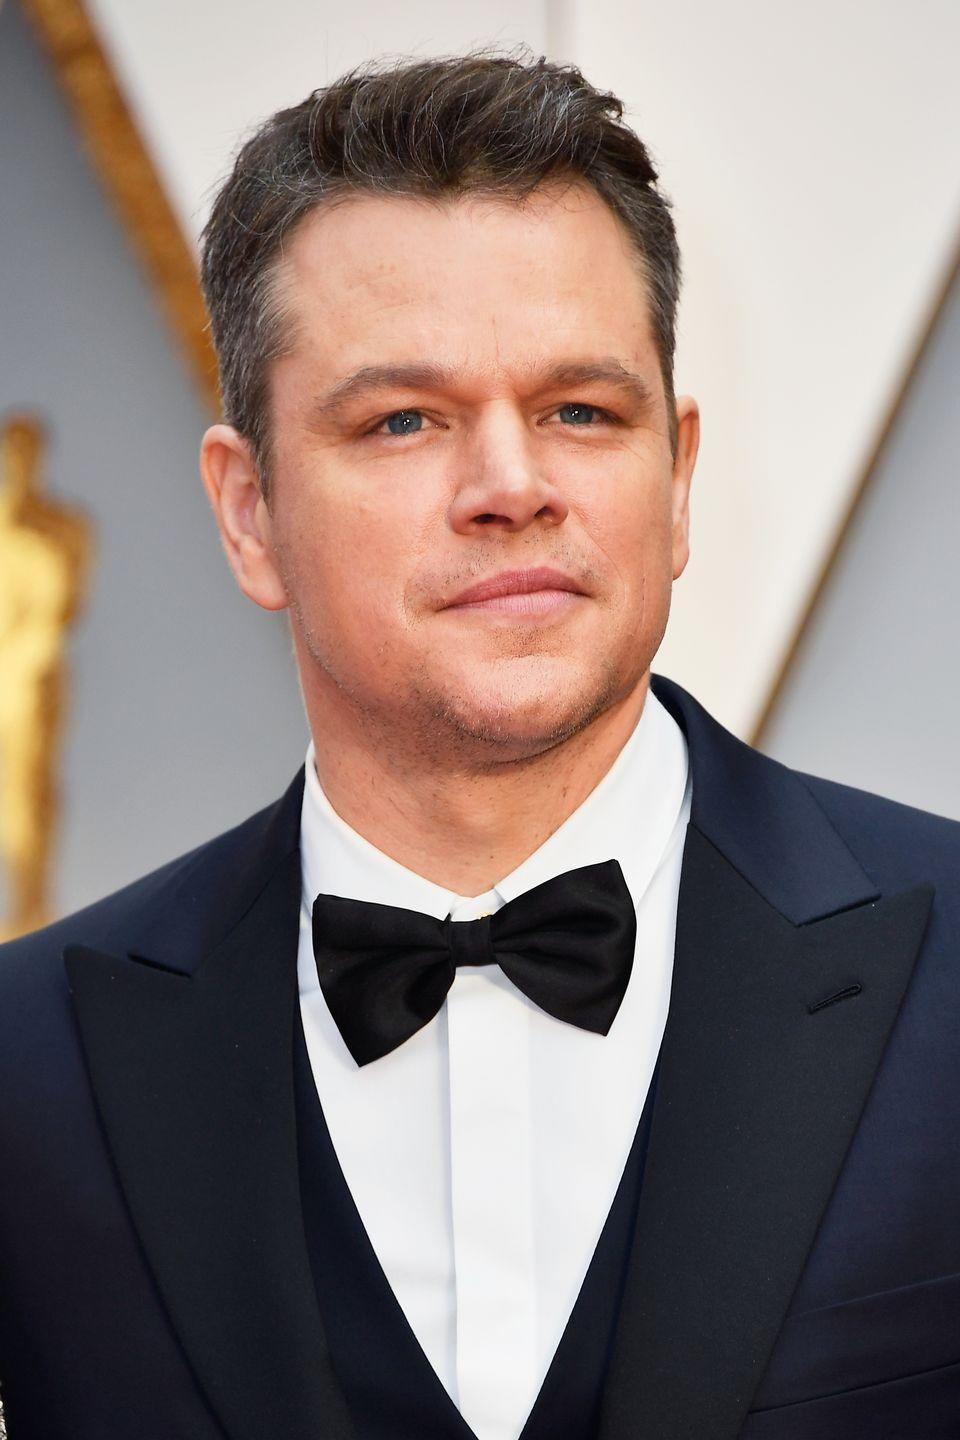 """<p>Damon <a href=""""https://www.theatlantic.com/entertainment/archive/2011/12/matt-damon-hated-third-bourne-movie/334313/"""" rel=""""nofollow noopener"""" target=""""_blank"""" data-ylk=""""slk:hated"""" class=""""link rapid-noclick-resp"""">hated</a> the third film in the <em>Bourne</em> series. """"I don't blame Tony for taking a boatload of money and handing in what he handed in. It's just that it was unreadable. This is a career ender...it's terrible. It's really embarrassing. He took his money and left."""" </p>"""